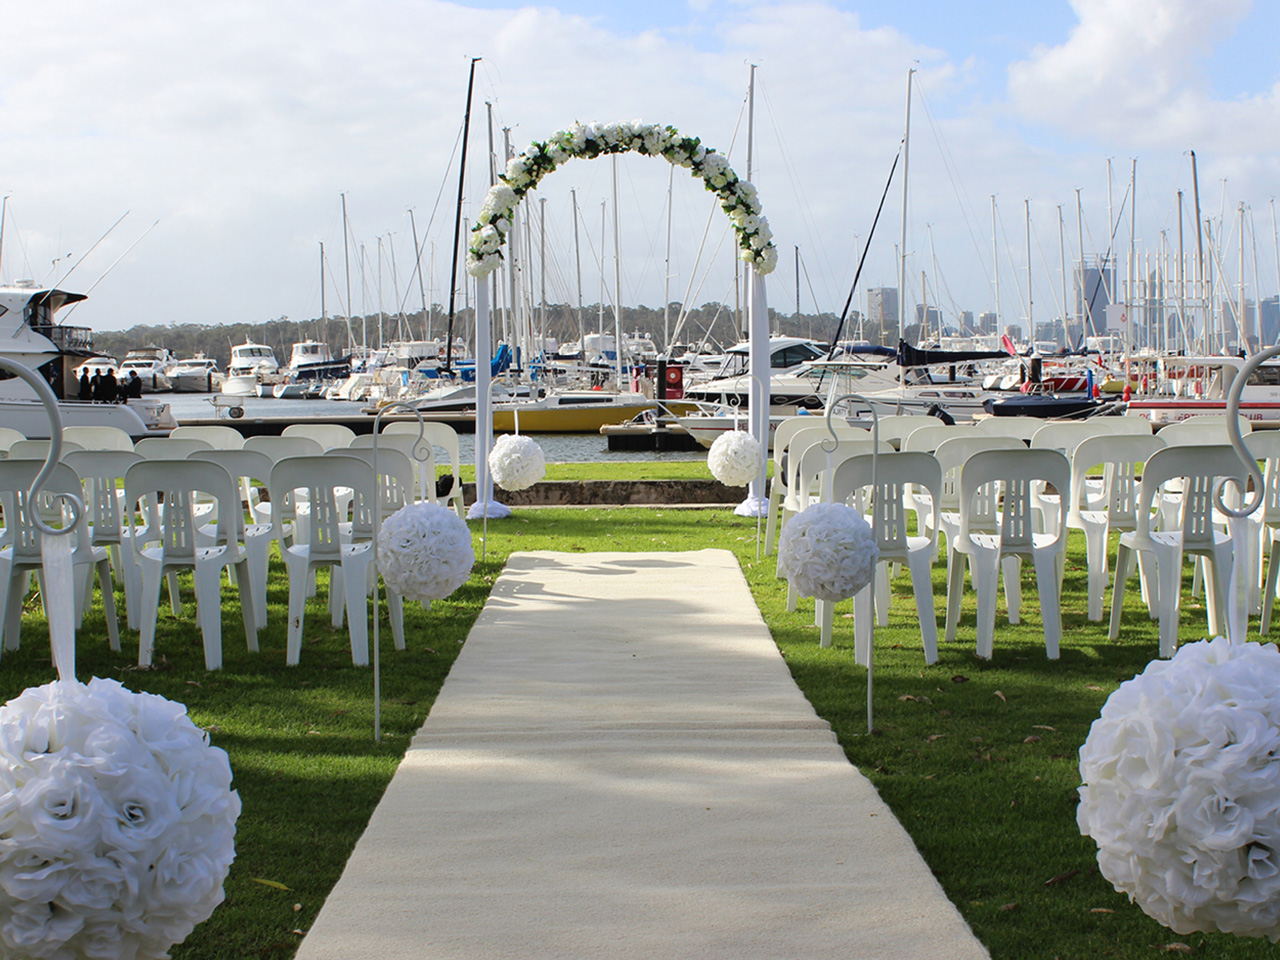 Wedding Ceremony Setup Near The Sea With White Carpet, Flowers, Flower Arc And Boats Behind